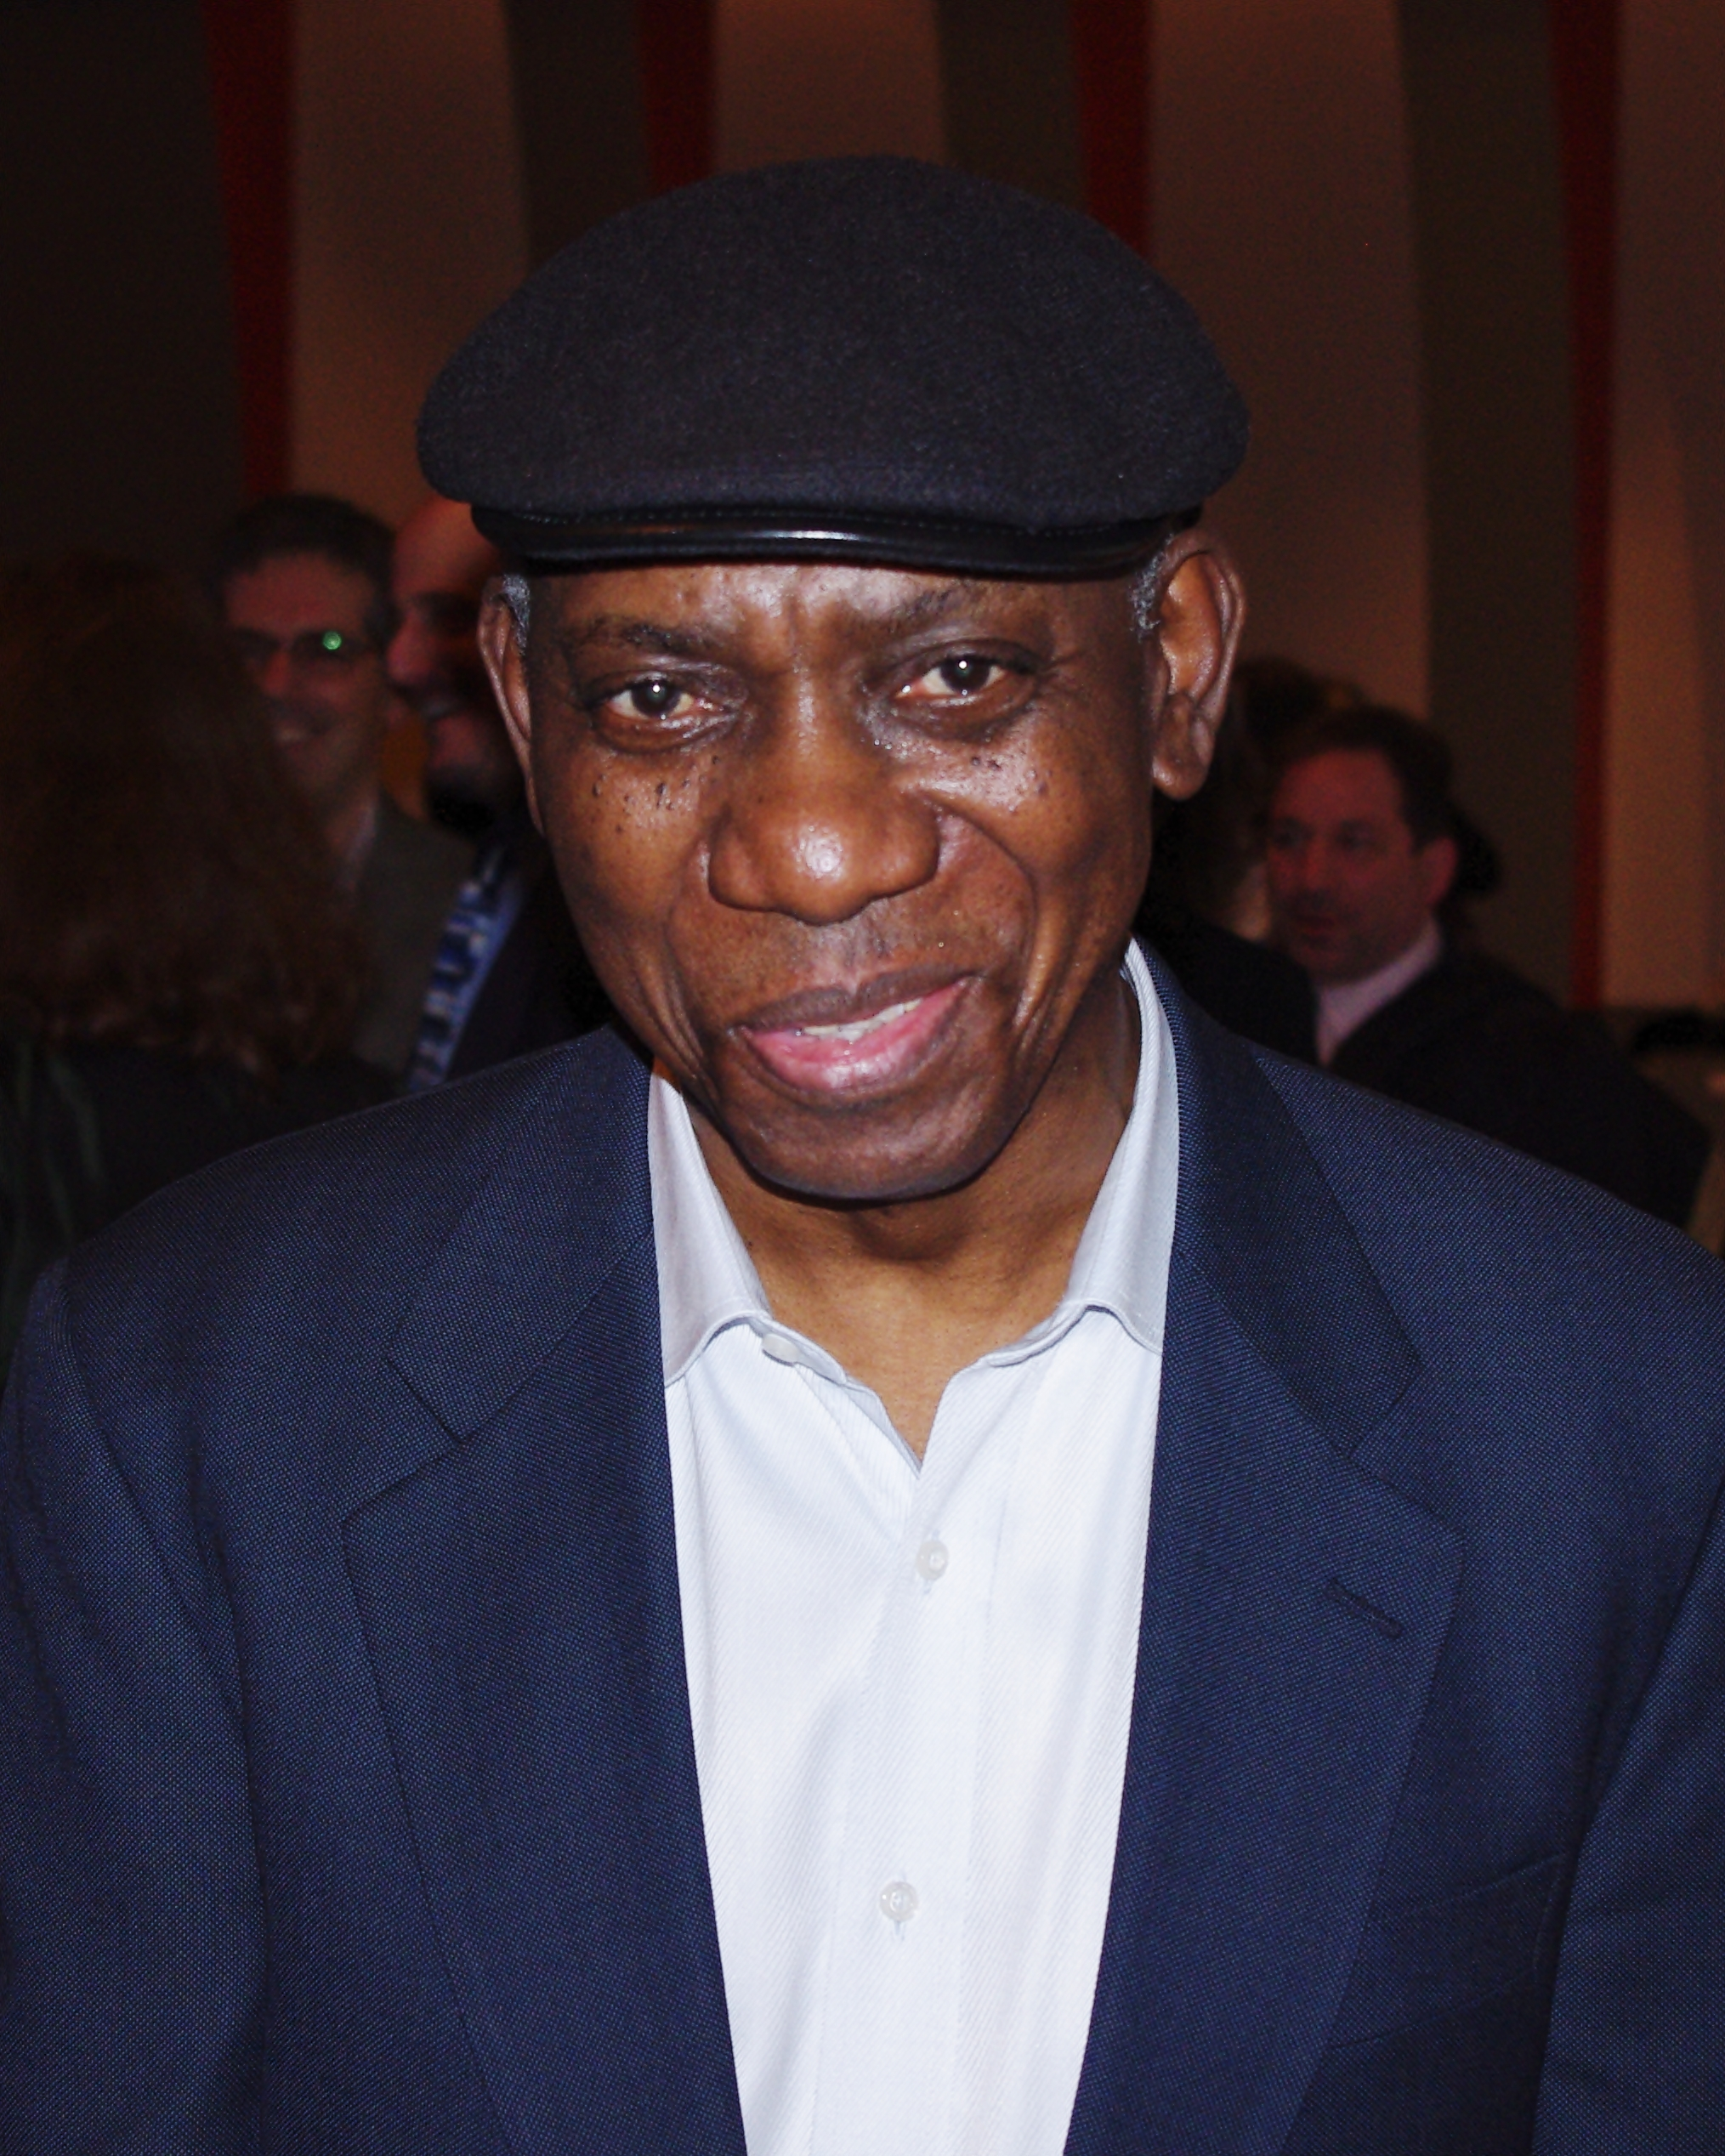 Komunyakaa at the 2011 [[National Book Critics Circle Awards]] in March 2012; his book ''The Chameleon Couch'' was nominated for the poetry award.